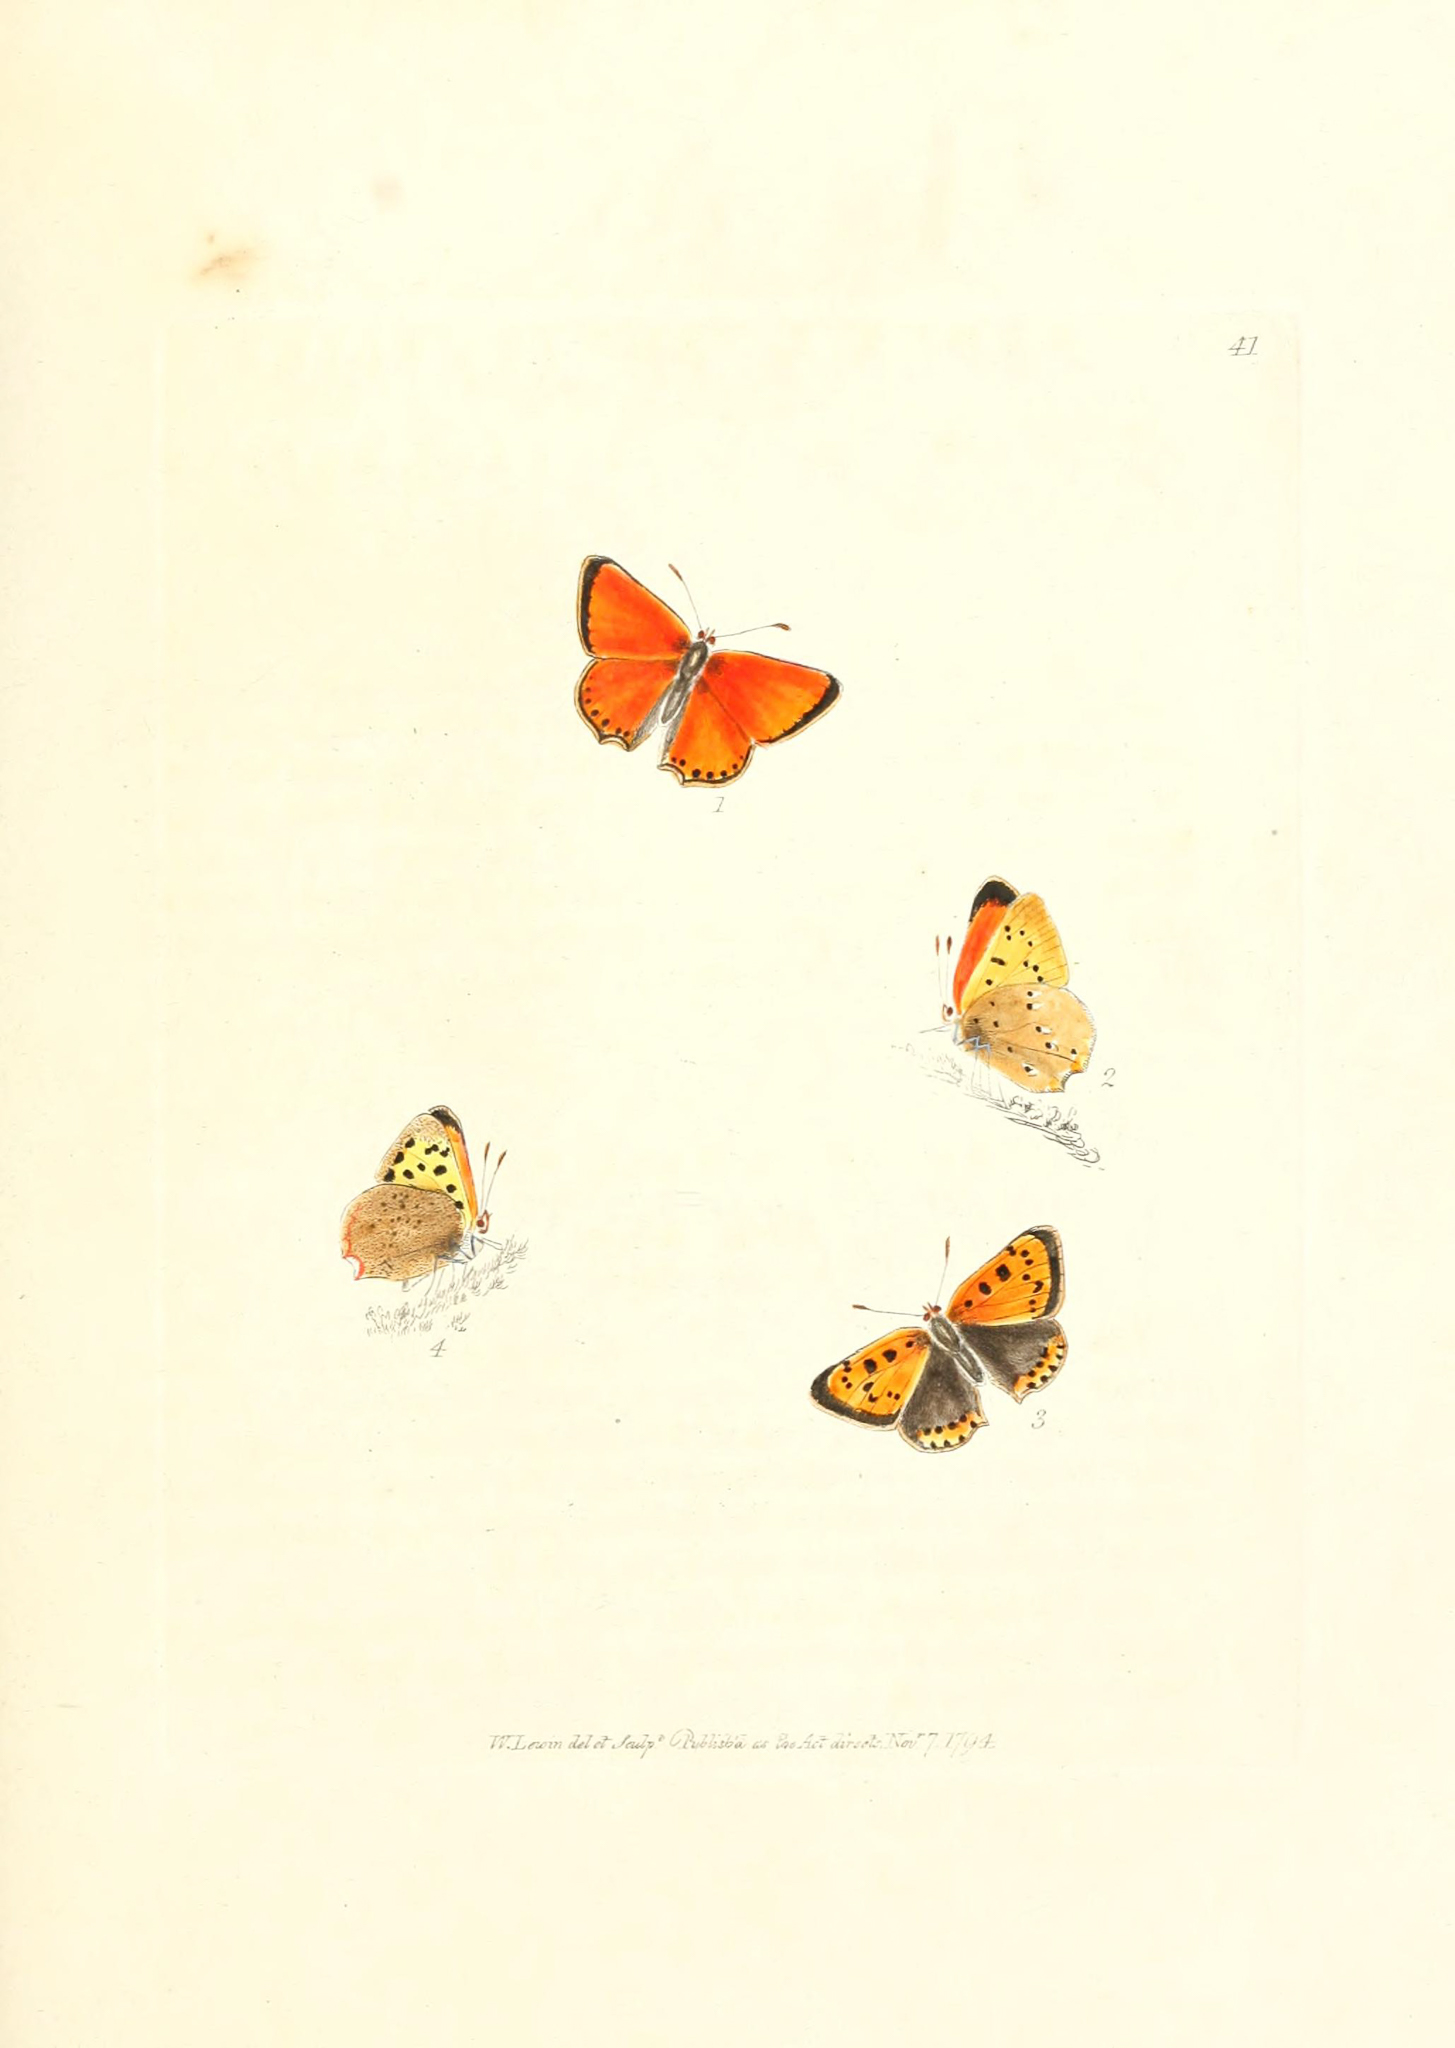 Small Copper - W Lewin - The Papilios of Great Britain - The Hall of Einar